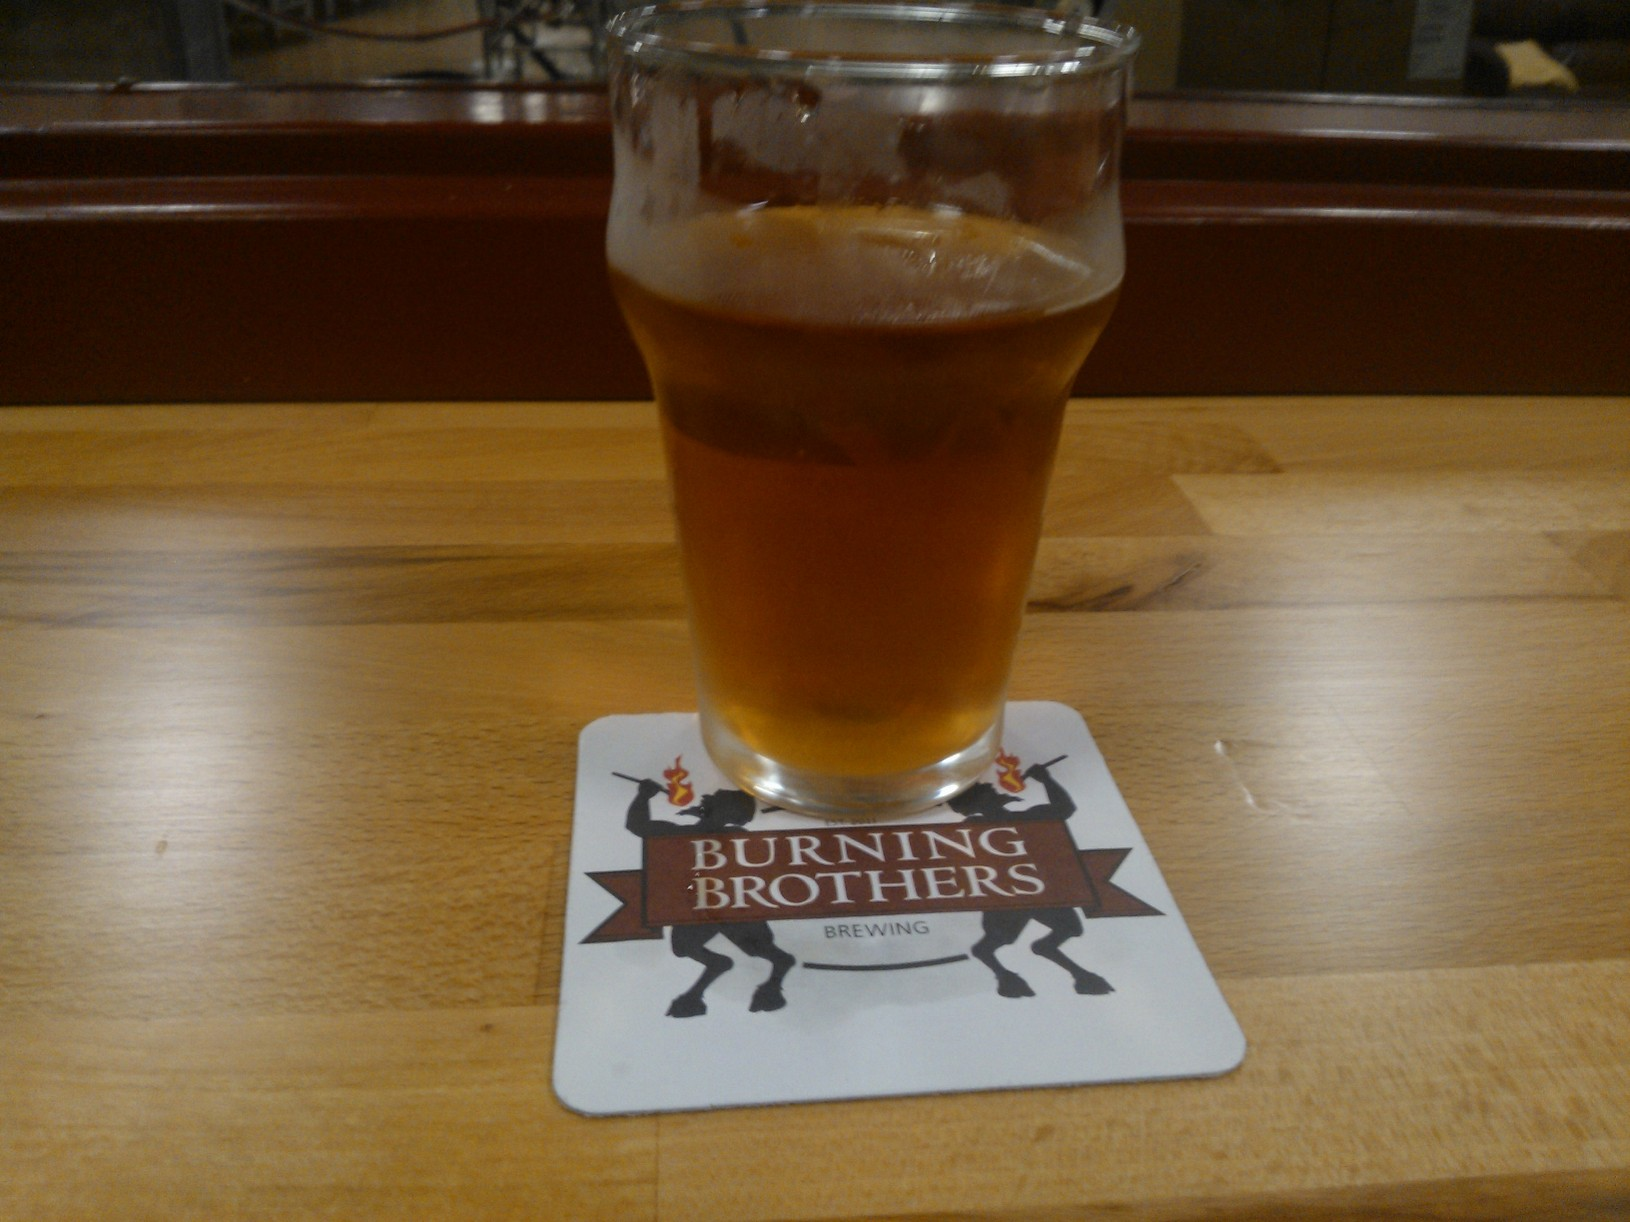 A Half Pint at Burning Brothers Brewing